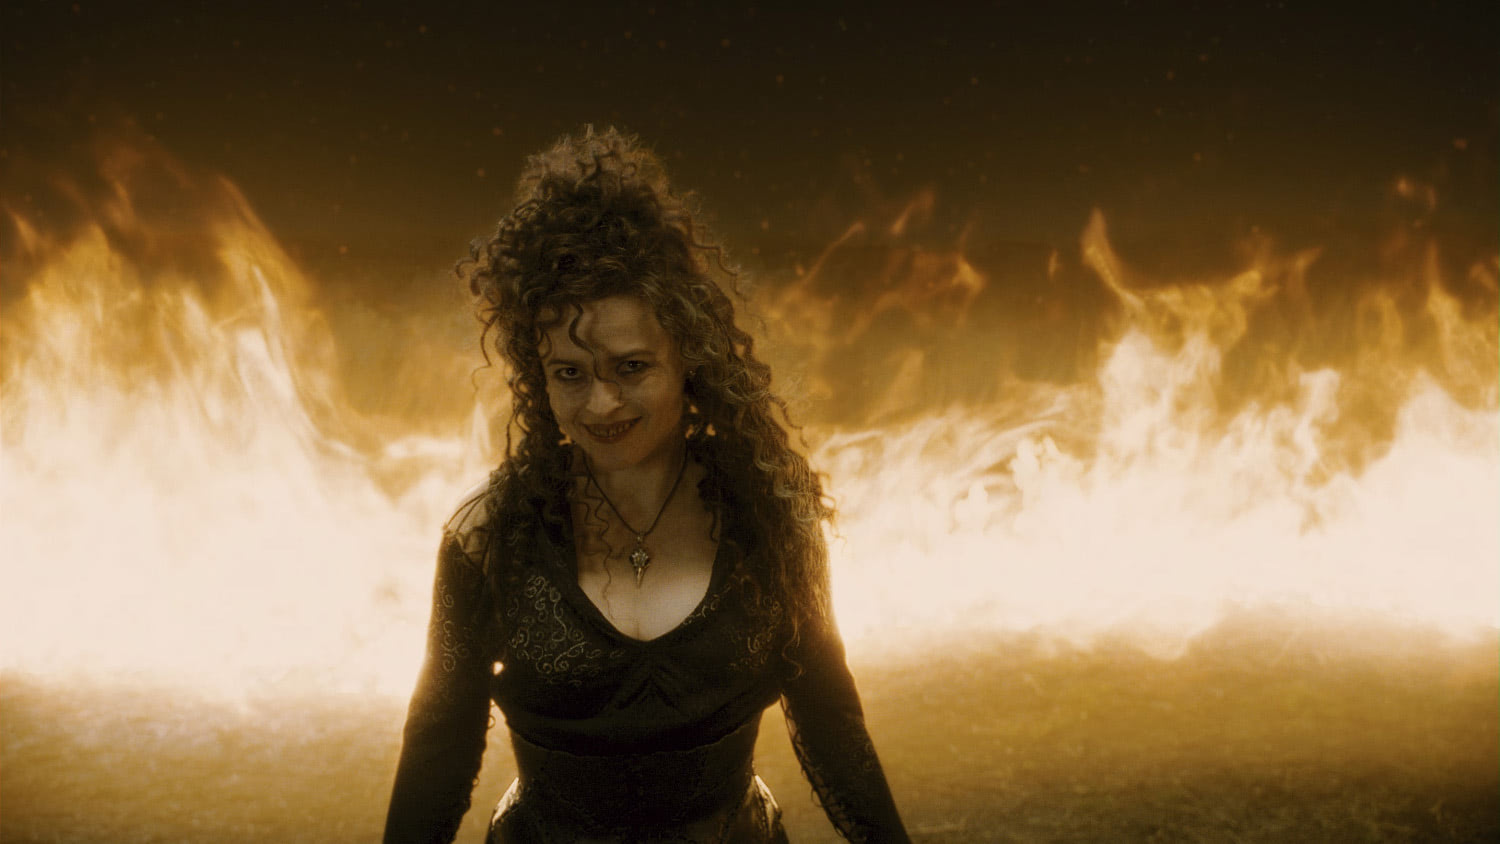 Bellatrix in the fire